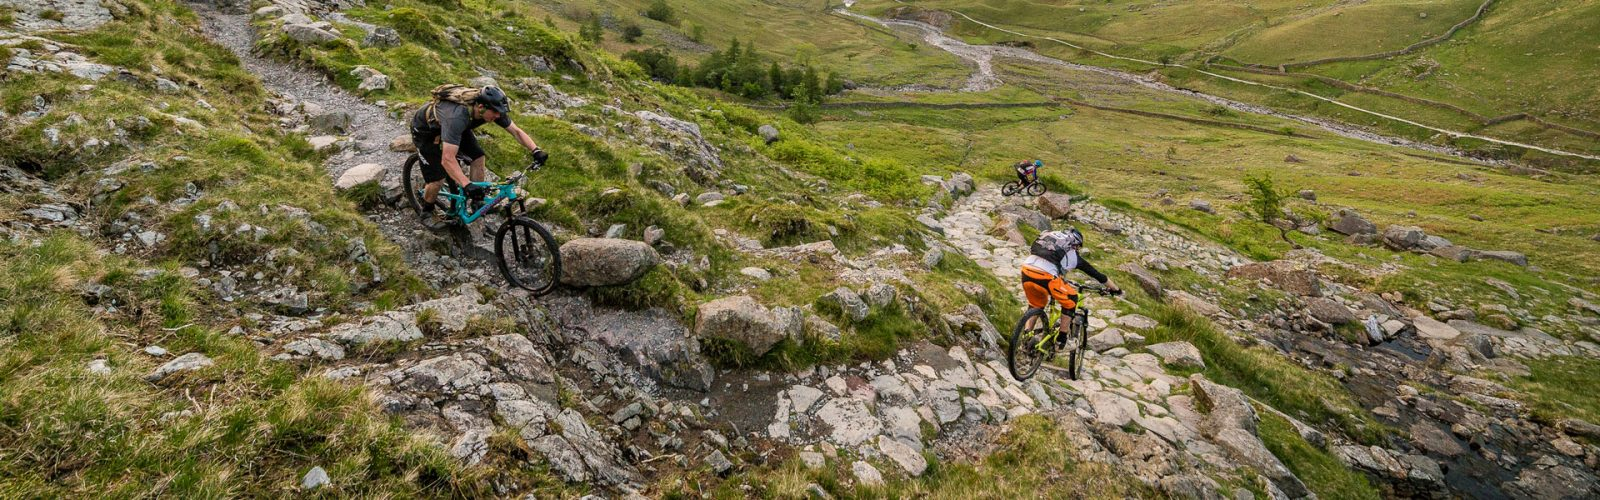 fcd0b44aa2f Home - Lake District Mountain Biking Routes, Trail Maps and Stunning ...